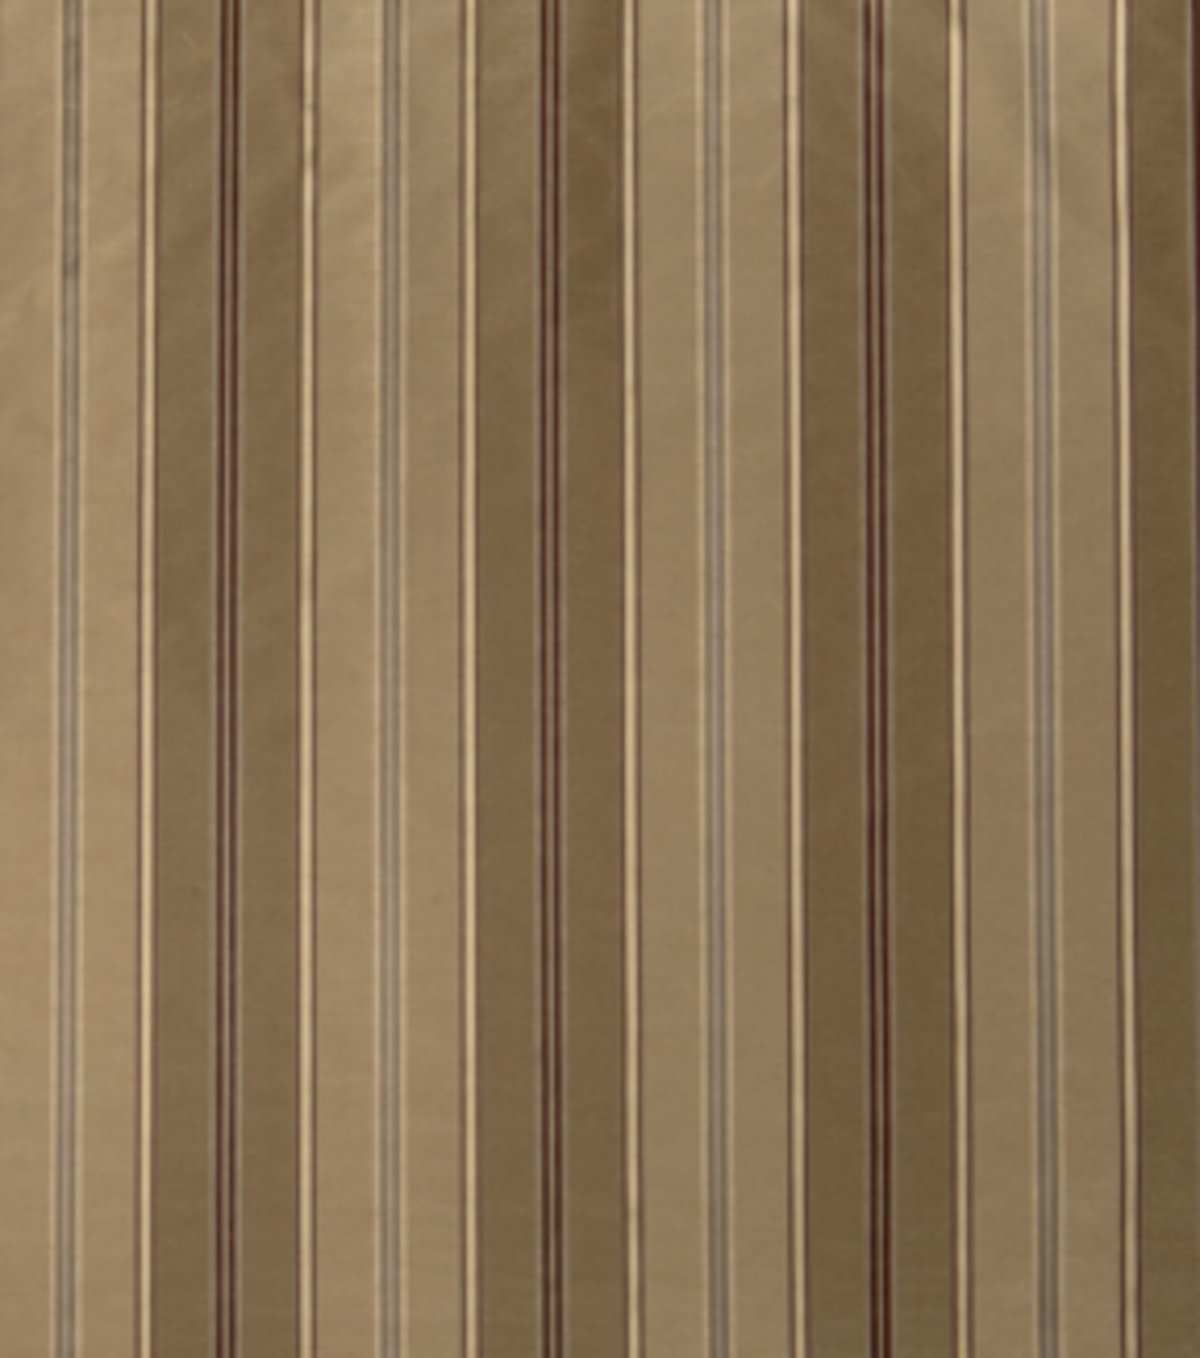 Home Decor 8\u0022x8\u0022 Fabric Swatch-SMC Designs Asiago / Bamboo